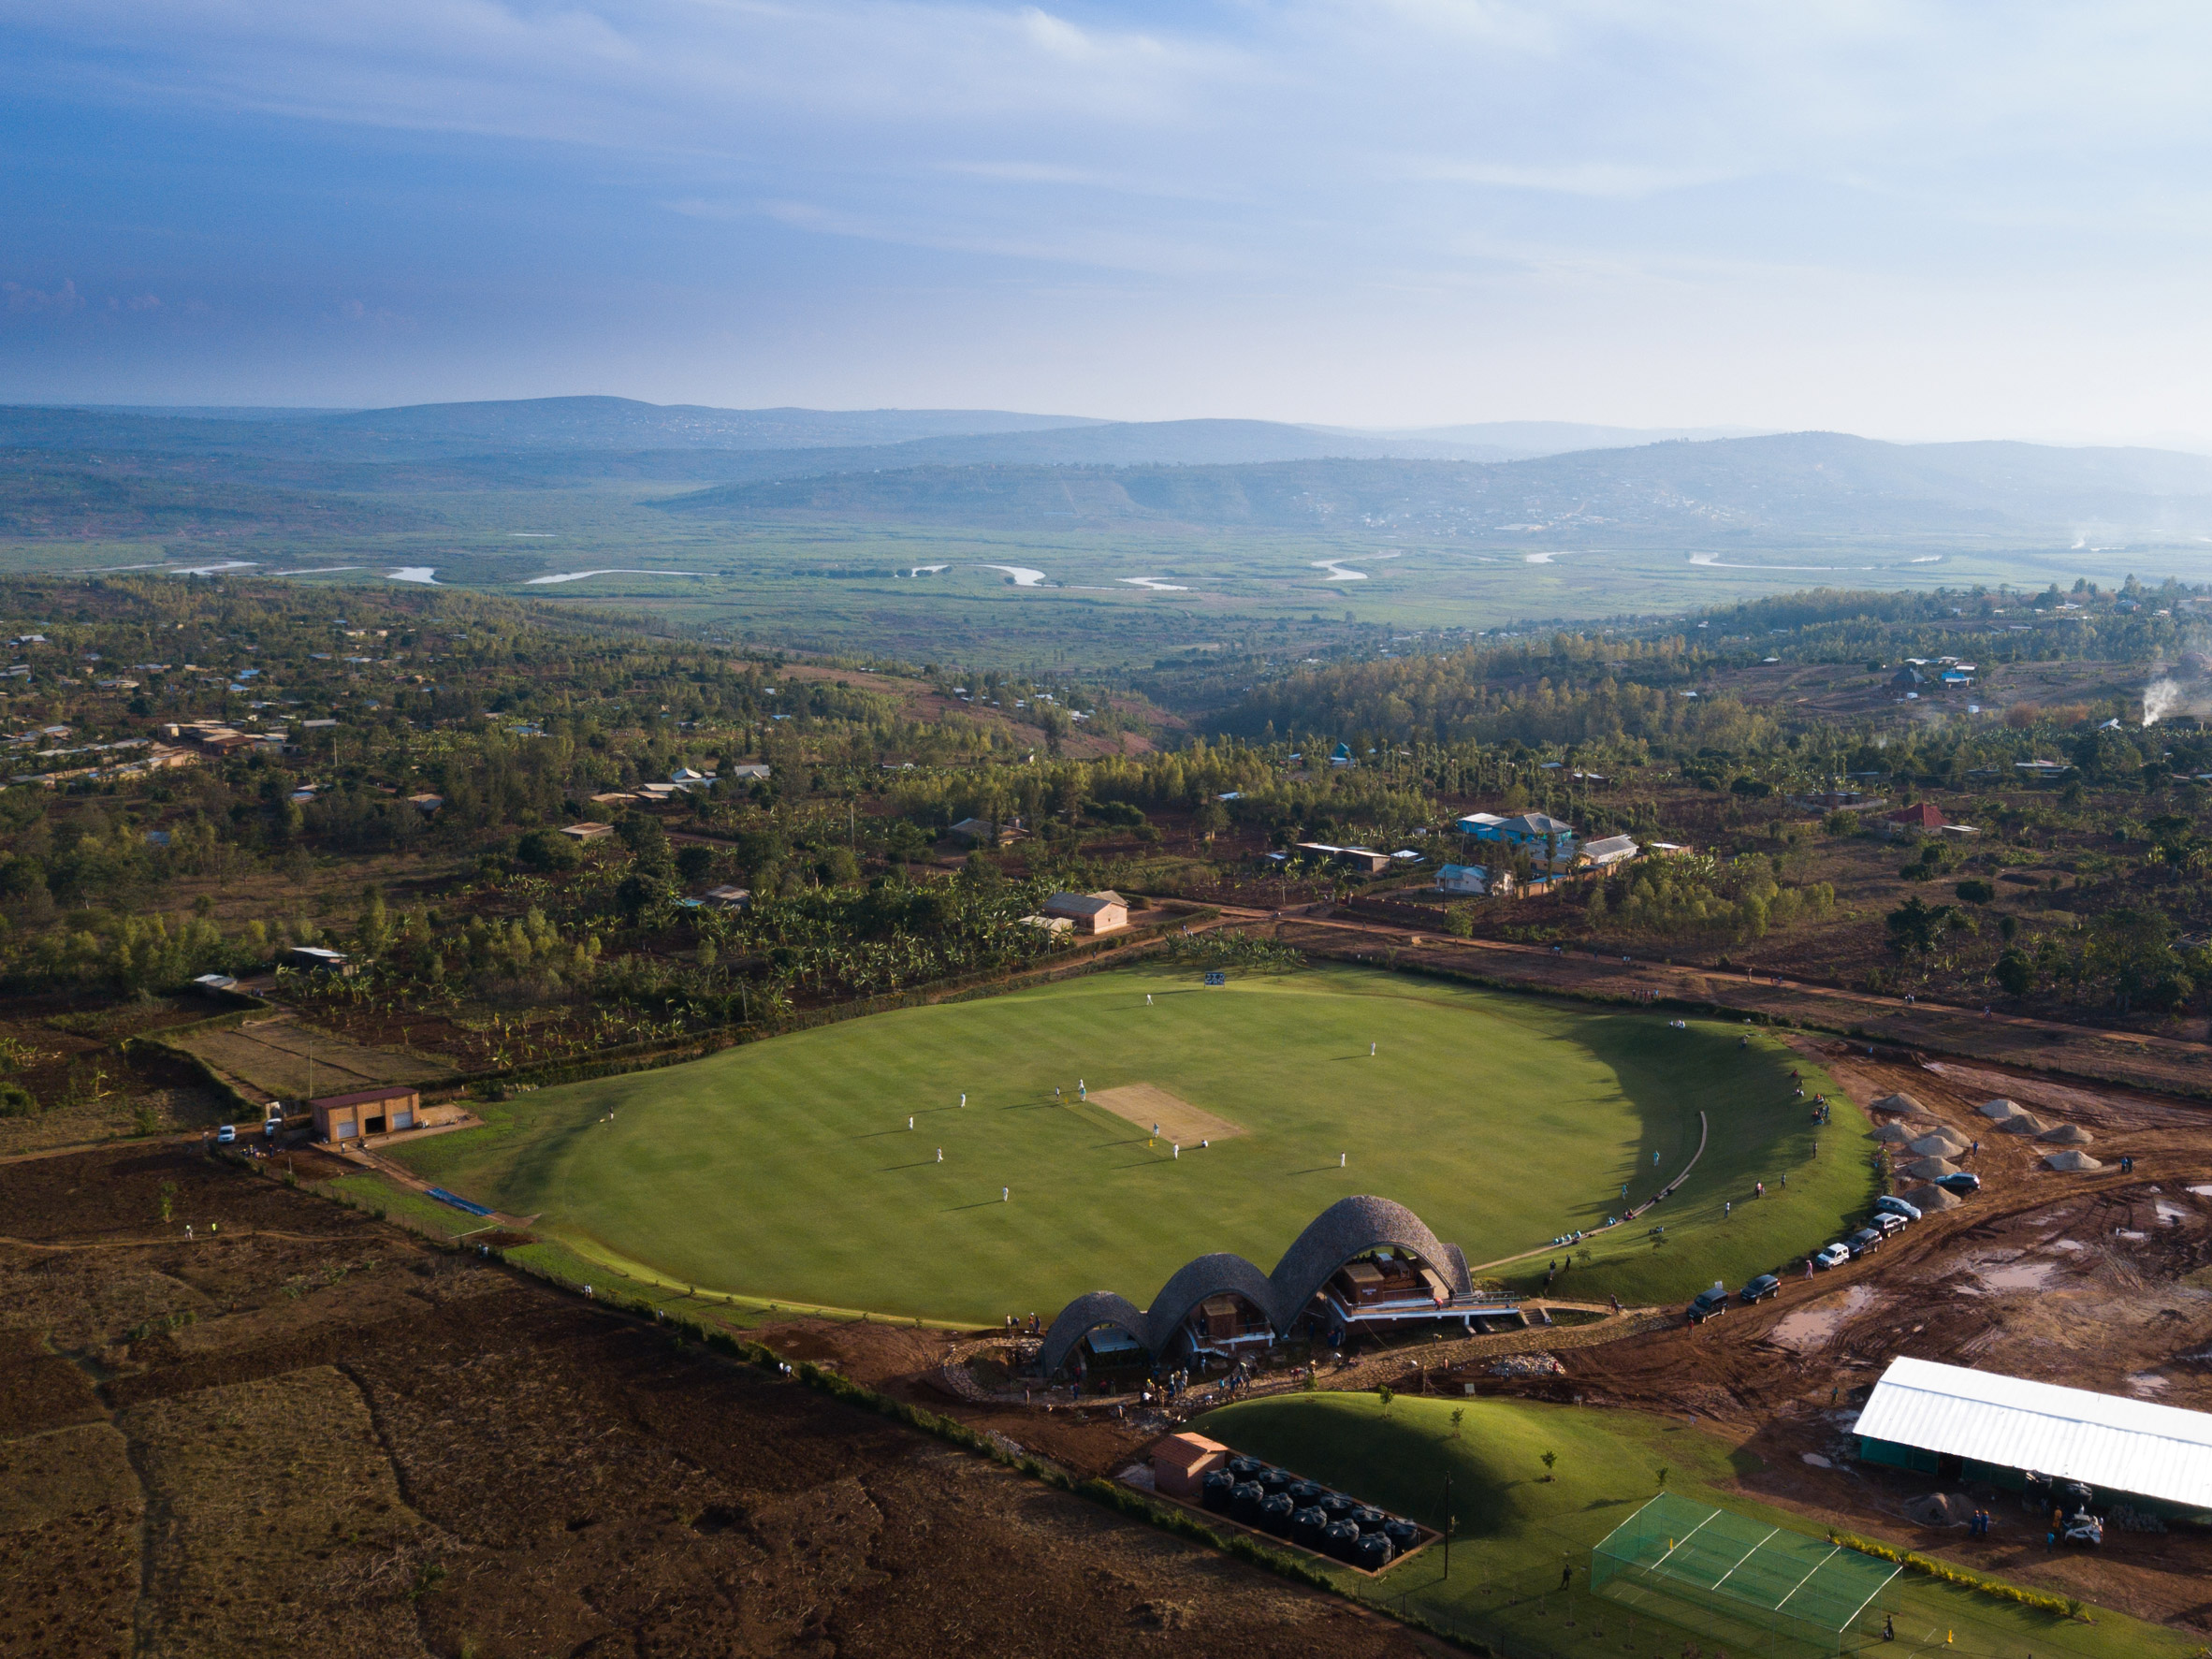 Rwanda cricket stadium by Light Earth Designs